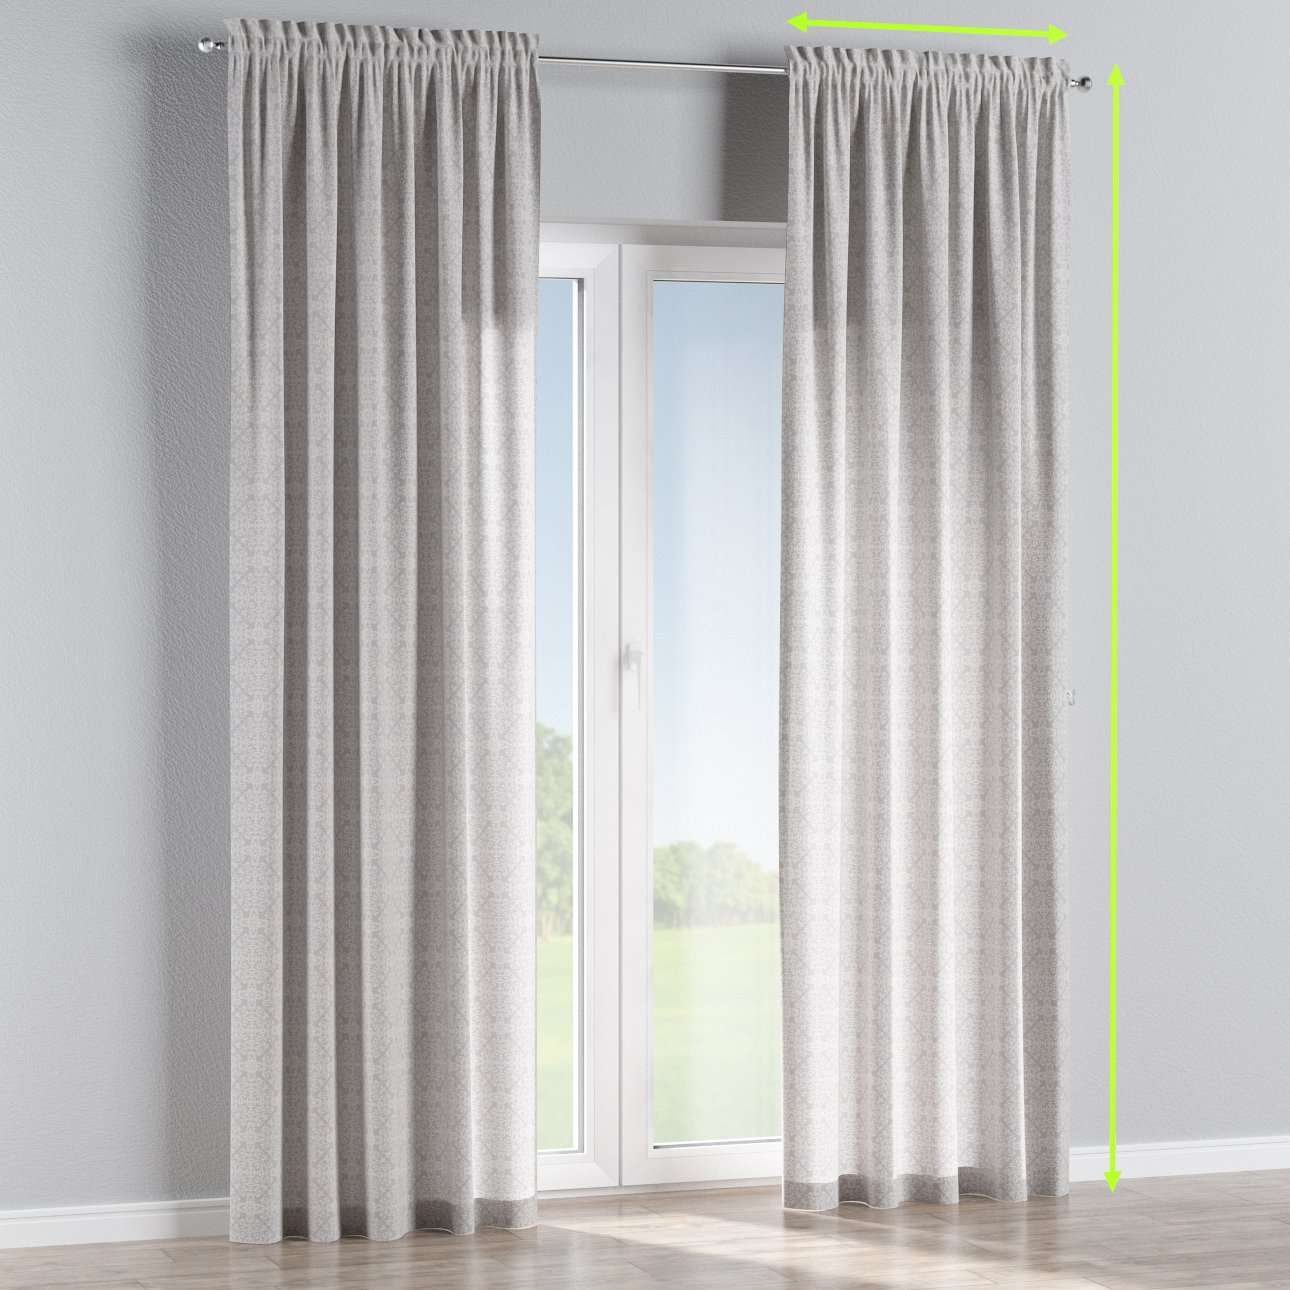 Slot and frill lined curtains in collection Flowers, fabric: 140-38